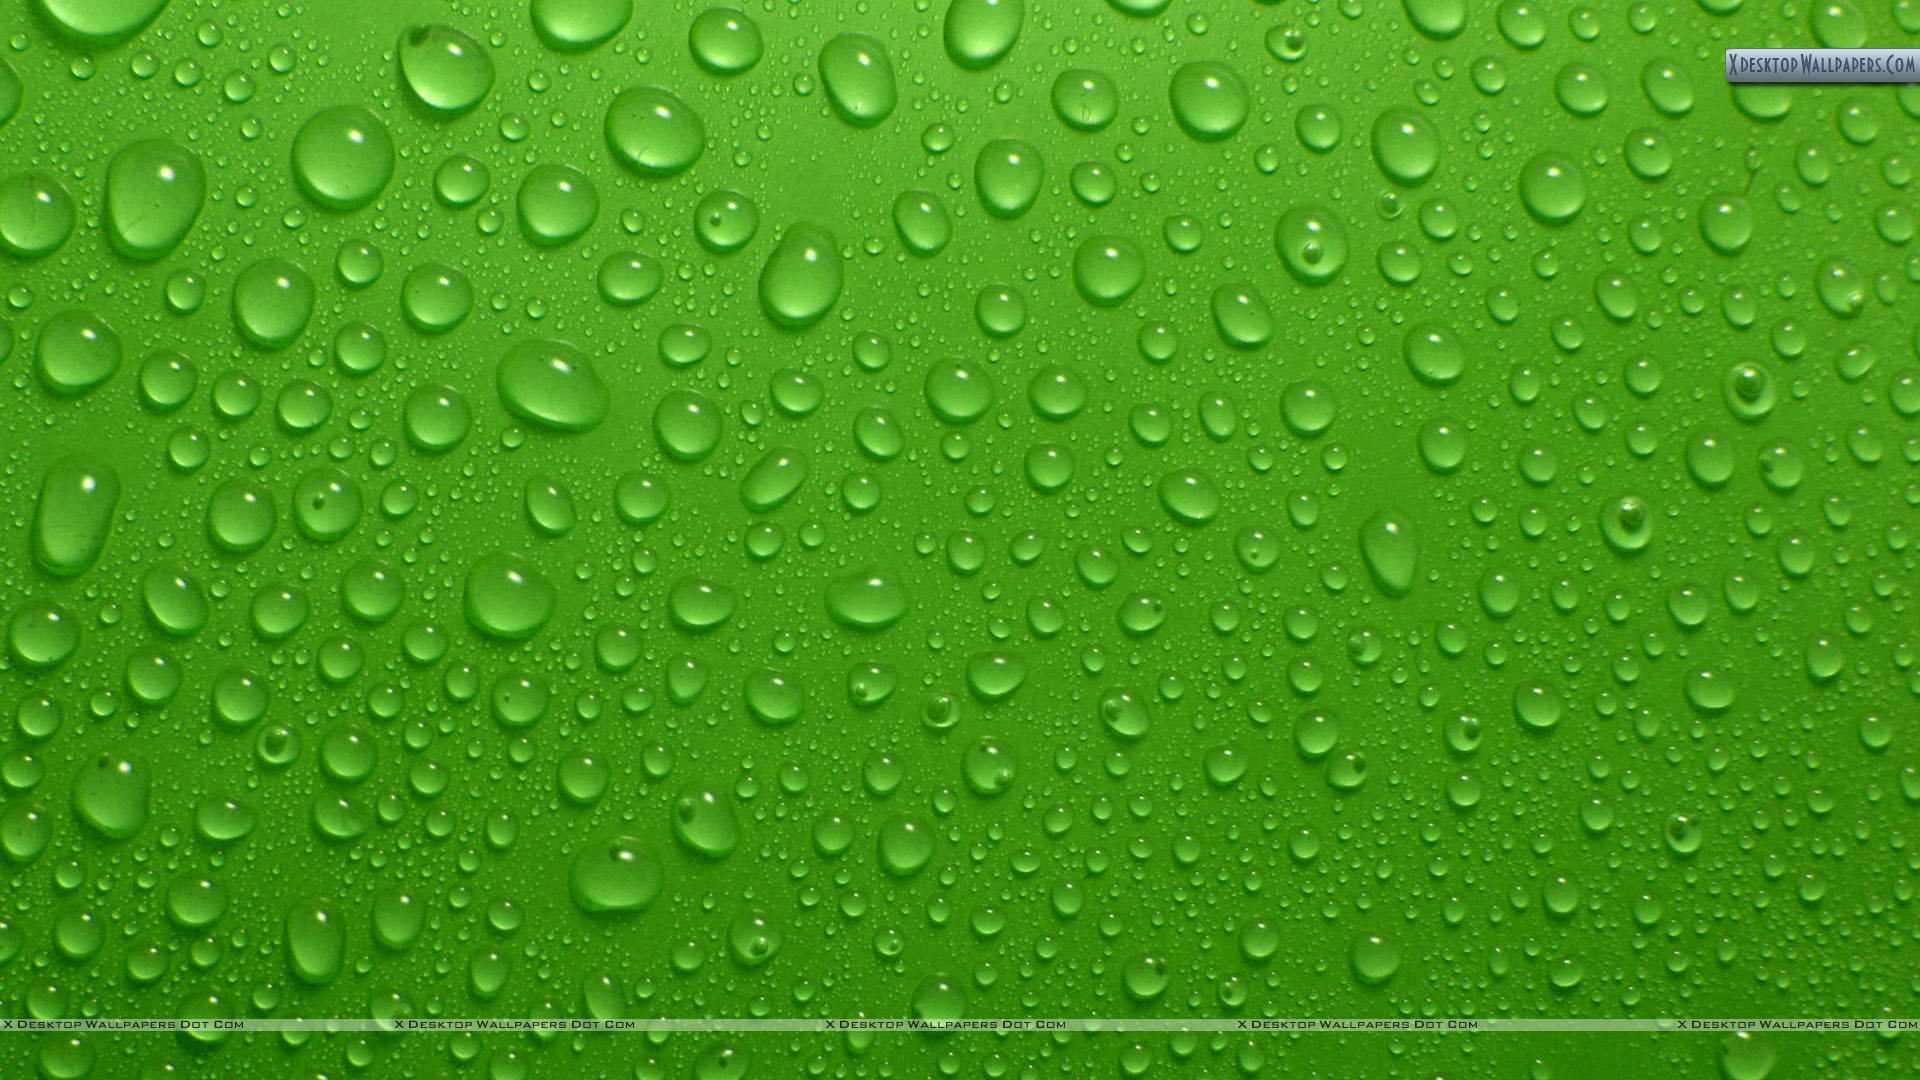 Drops On Green Background Wallpaper